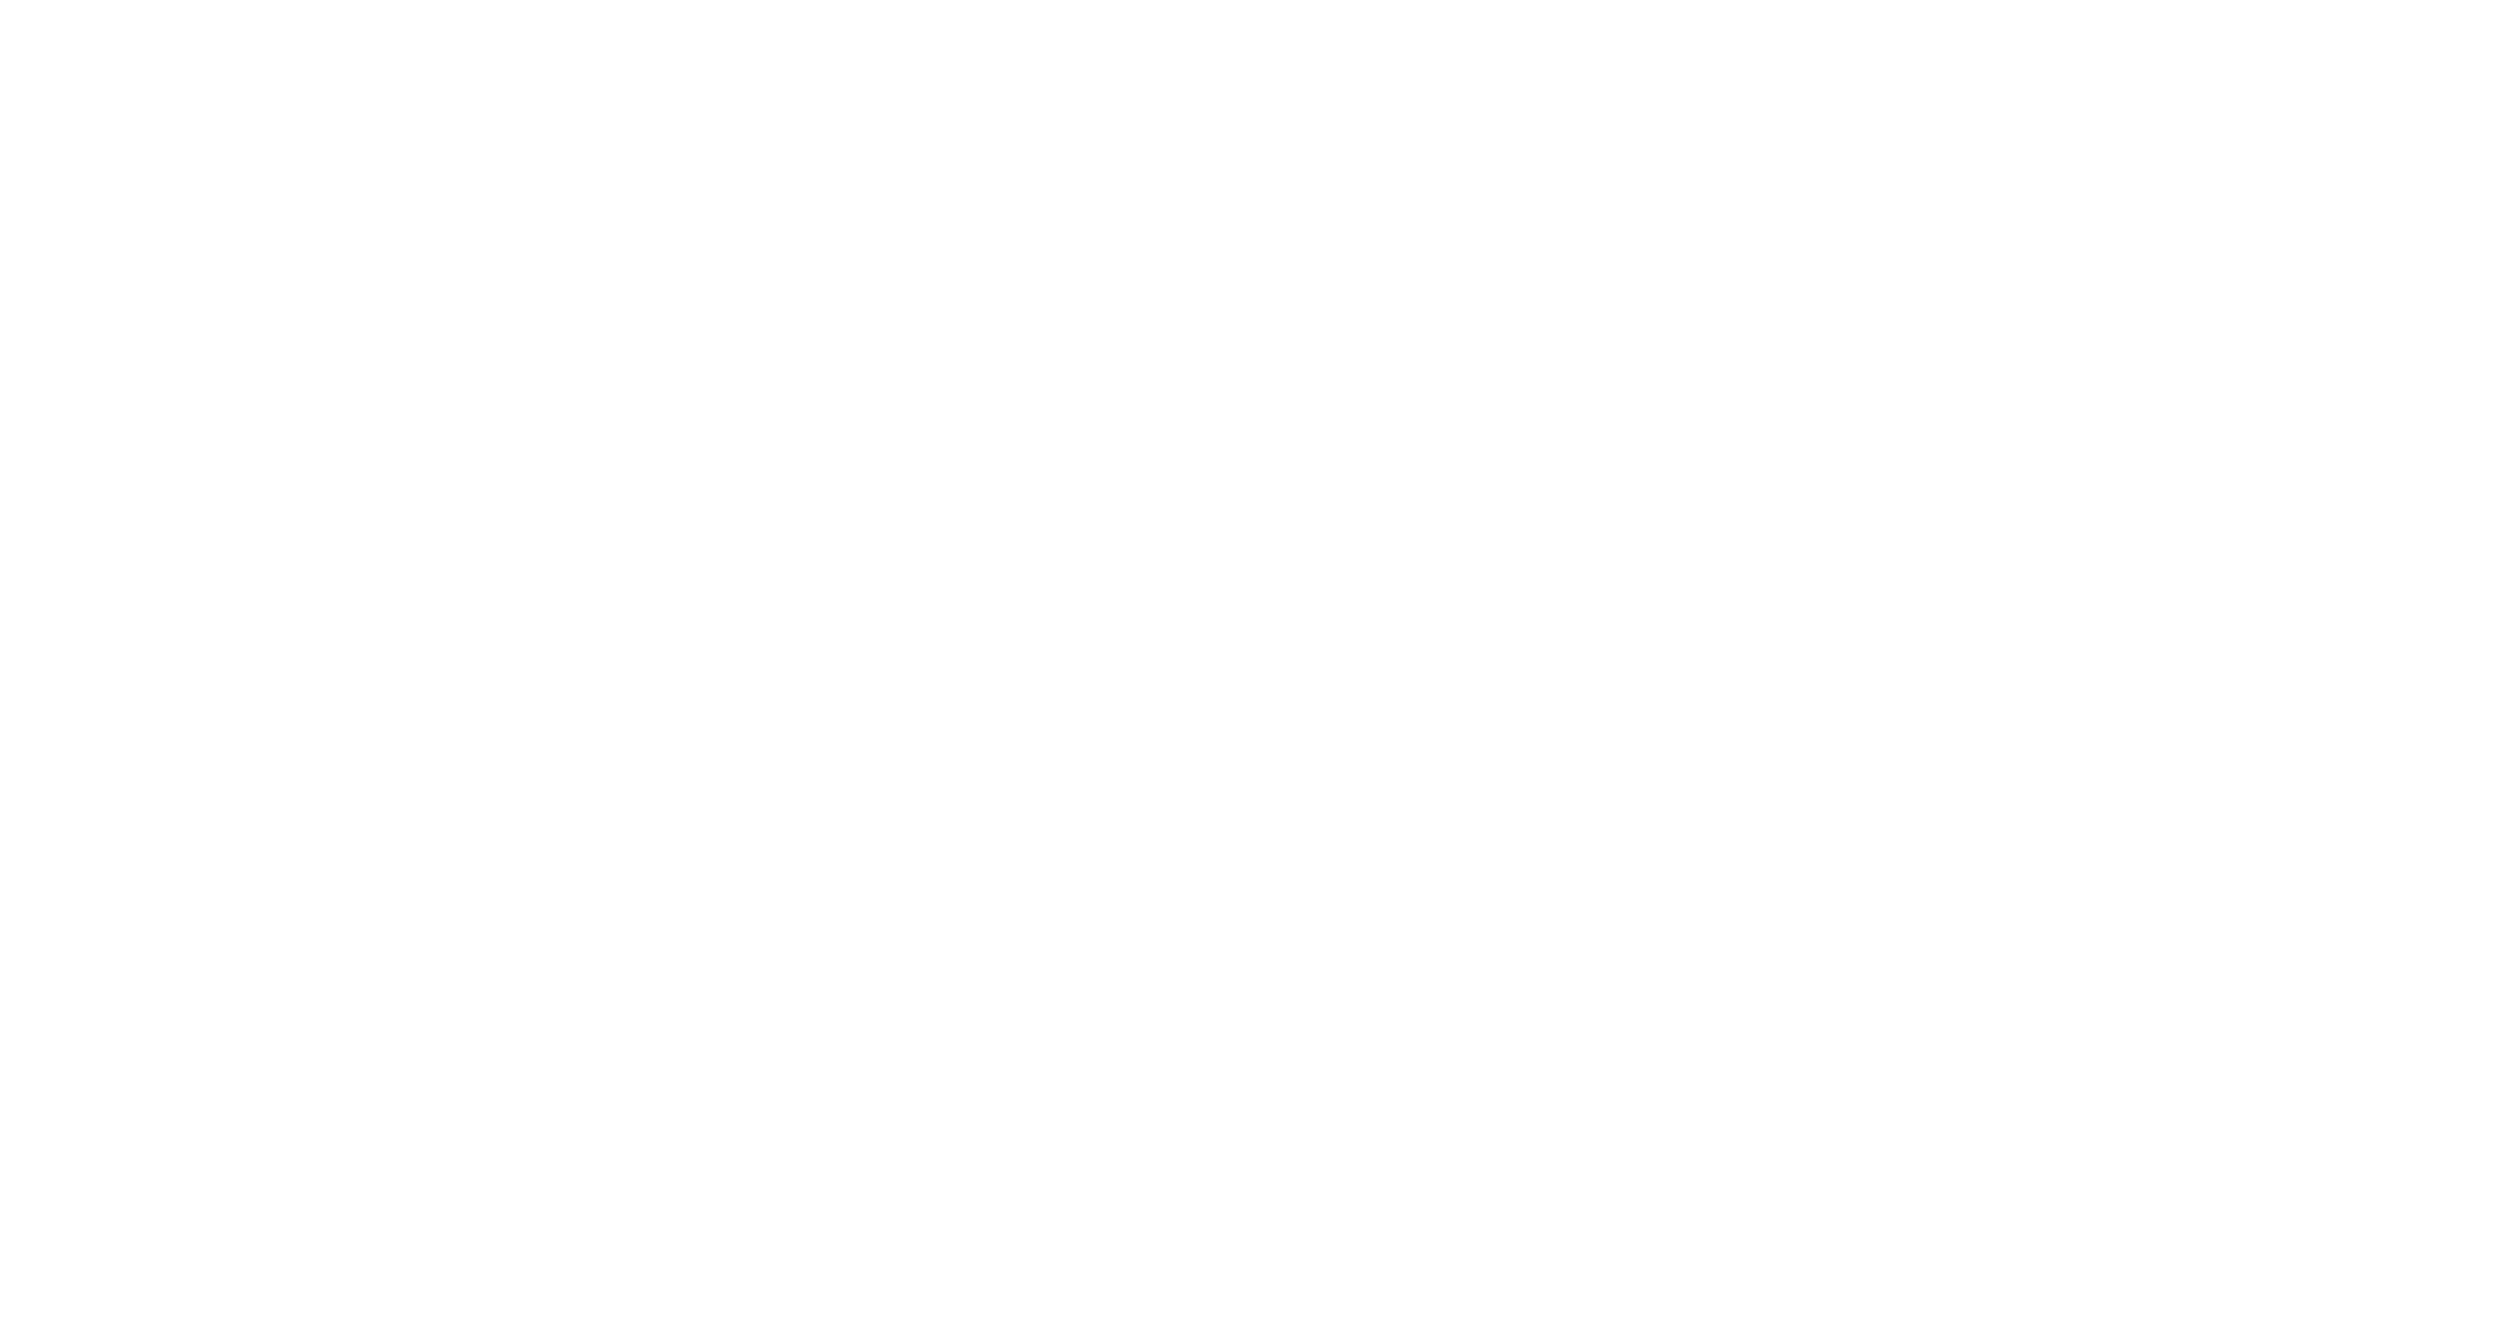 Motivated Movers NYC Footer